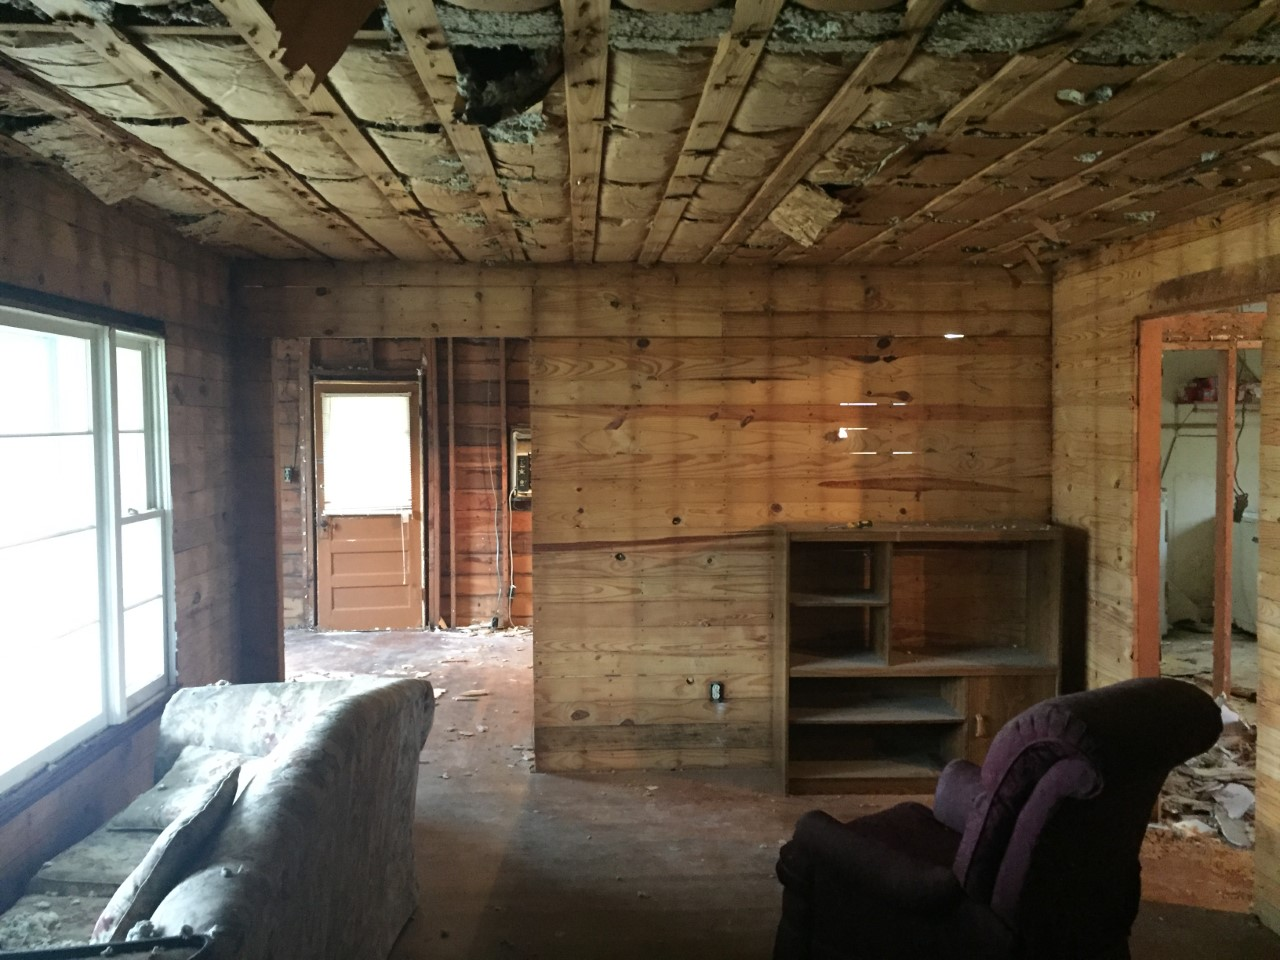 An unexpected surprise at the cottage charmer revealed SHIPLAP!